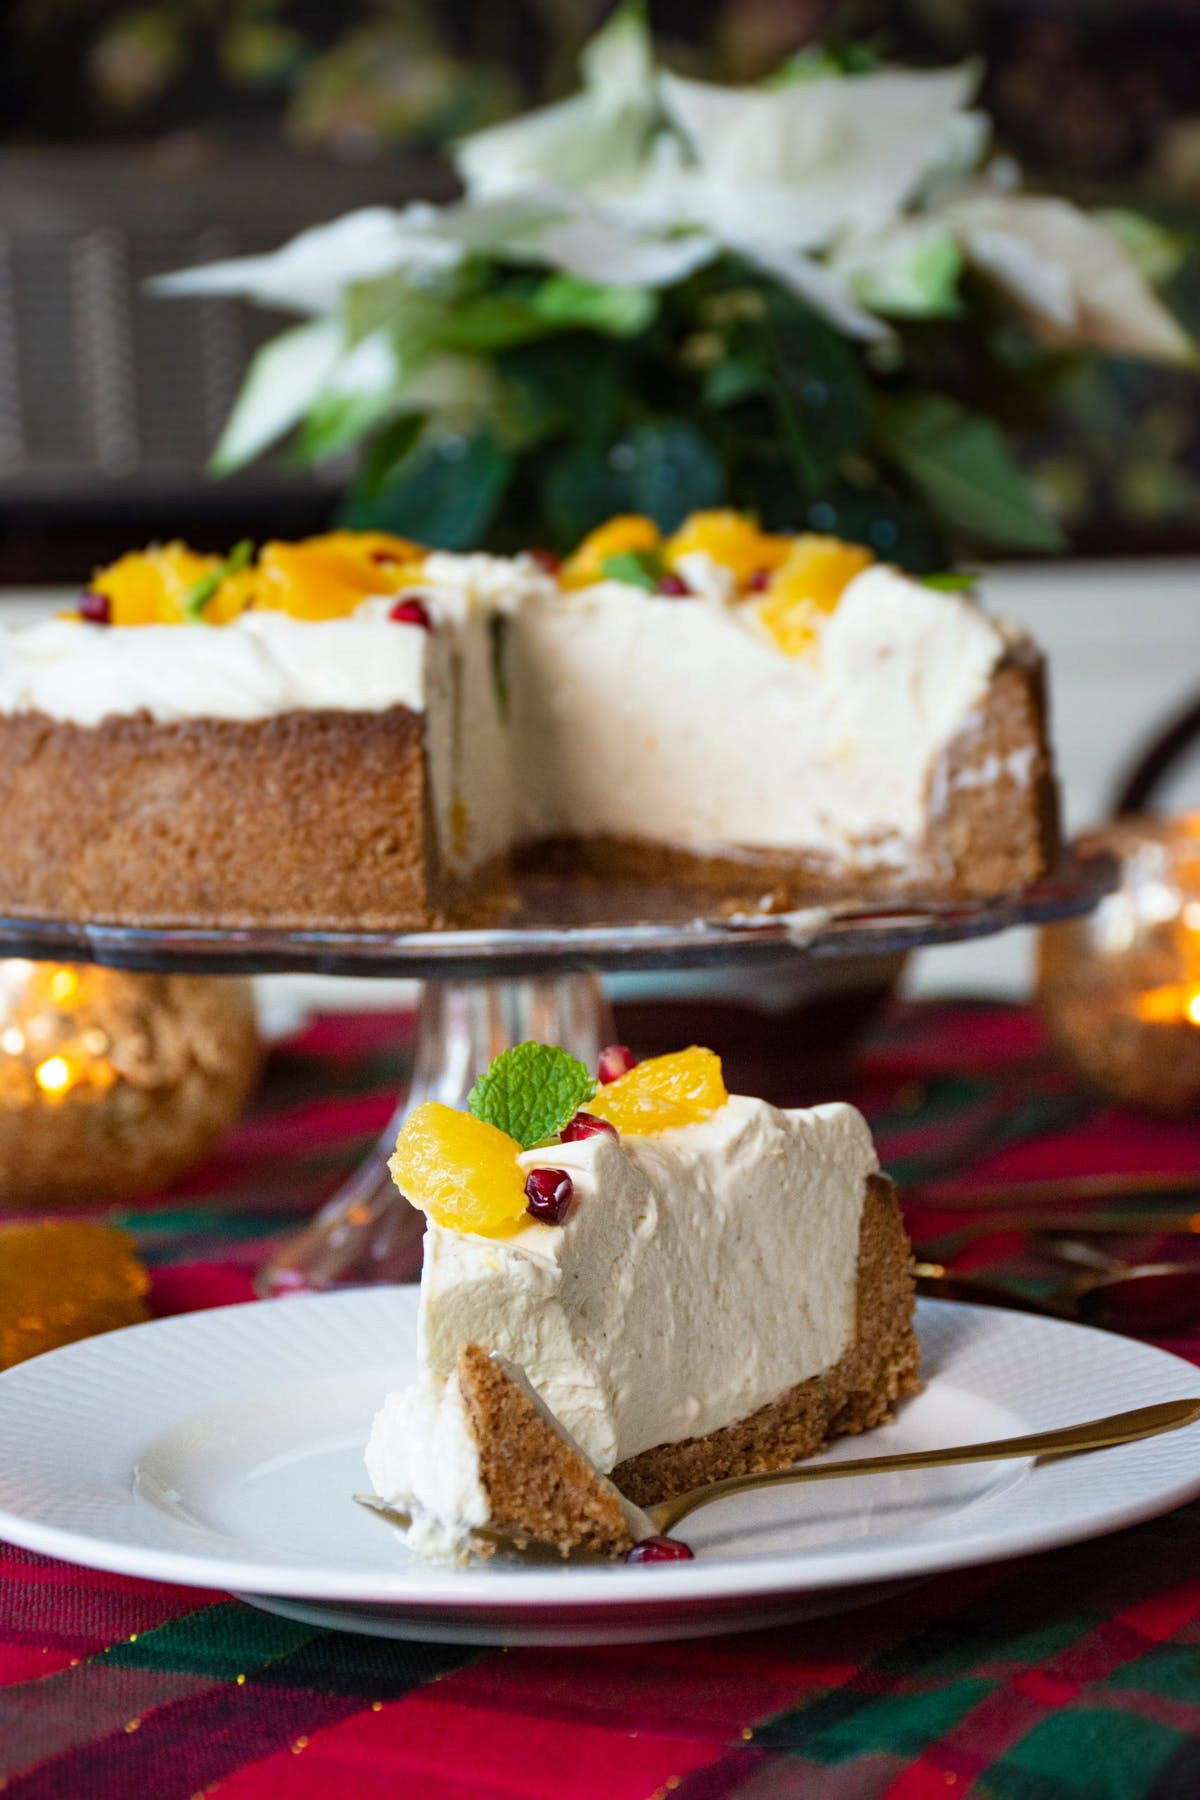 Low-carb orange and gingerbread cheesecake